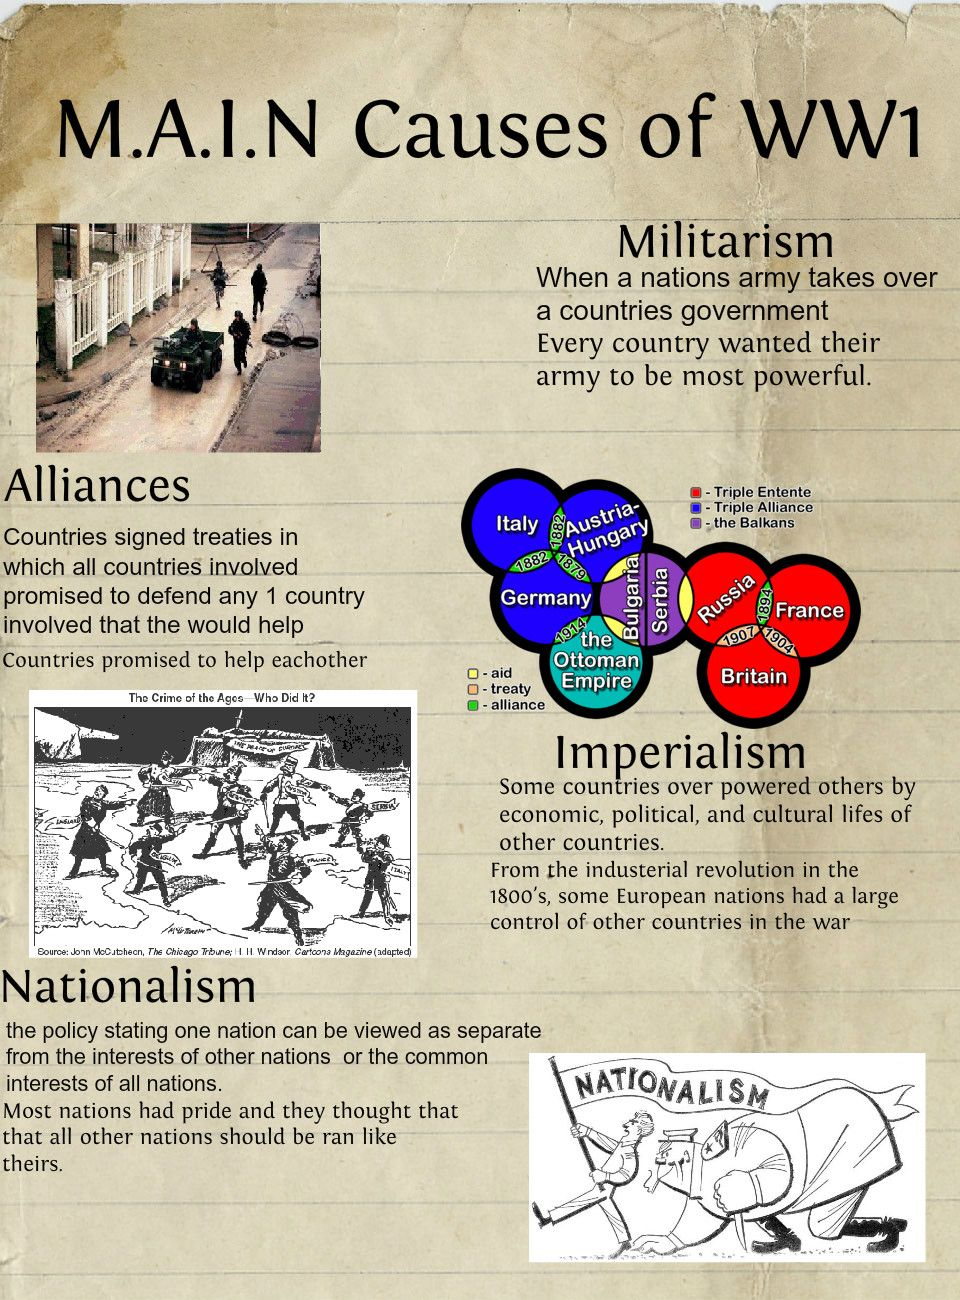 underlying causes of world war 1 essays World war one occurred in the early 20th century with an in-depth causes which are far deep and difficult besides the various scenes which led to the violence discussion there was a well established system of relations among states in the early 20th century.